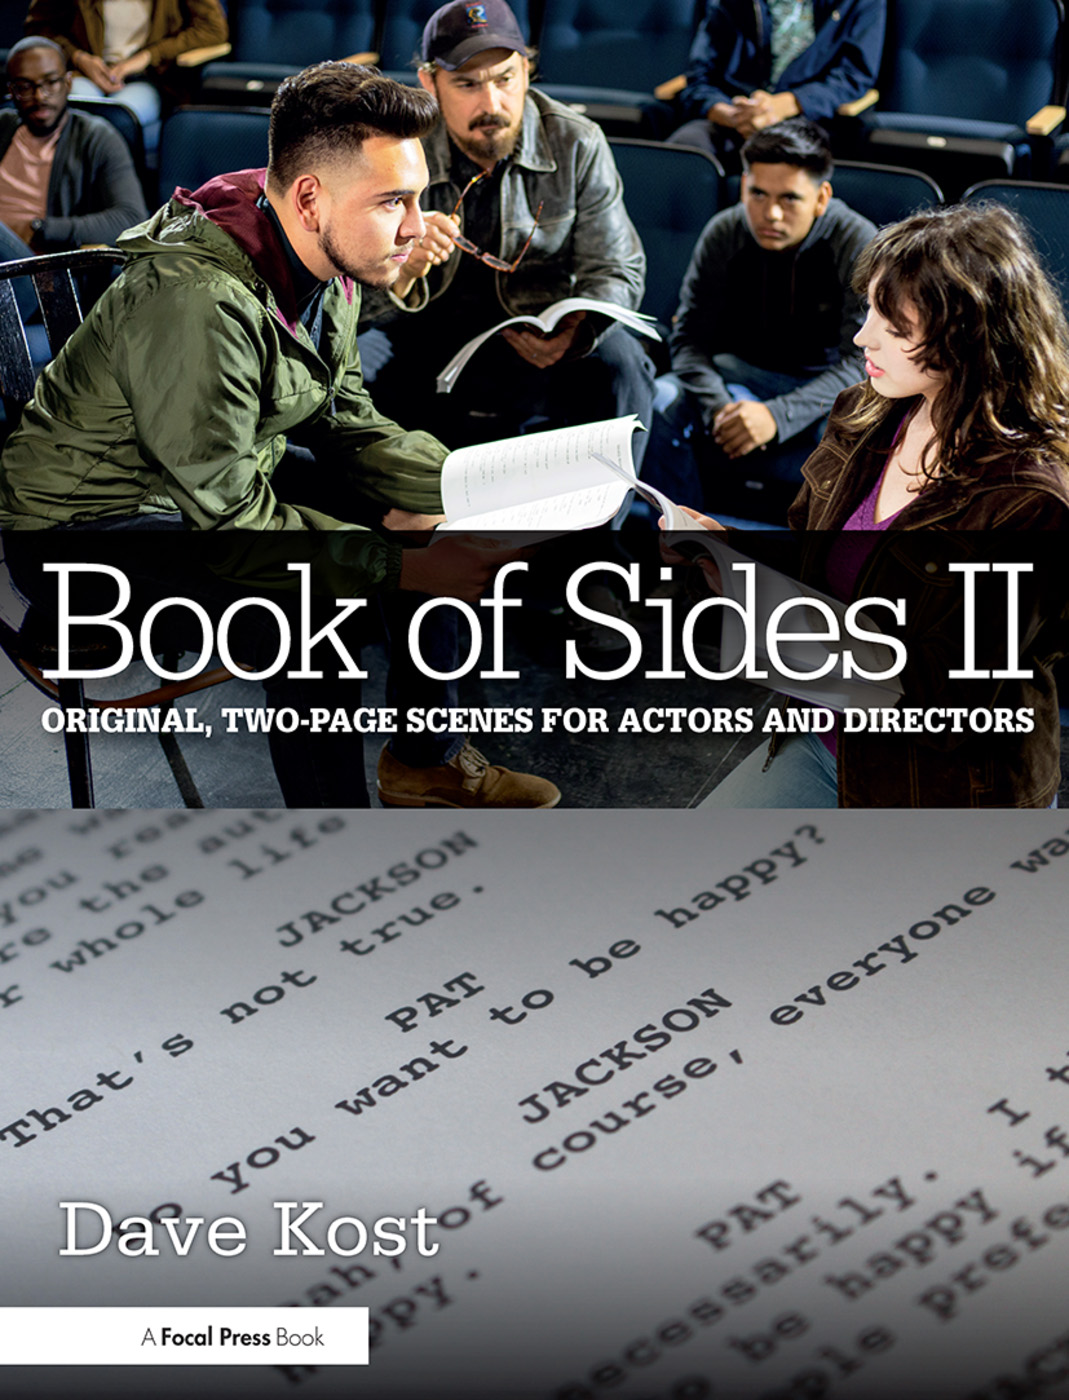 Book of Sides II: Original, Two-Page Scenes for Actors and Directors book cover